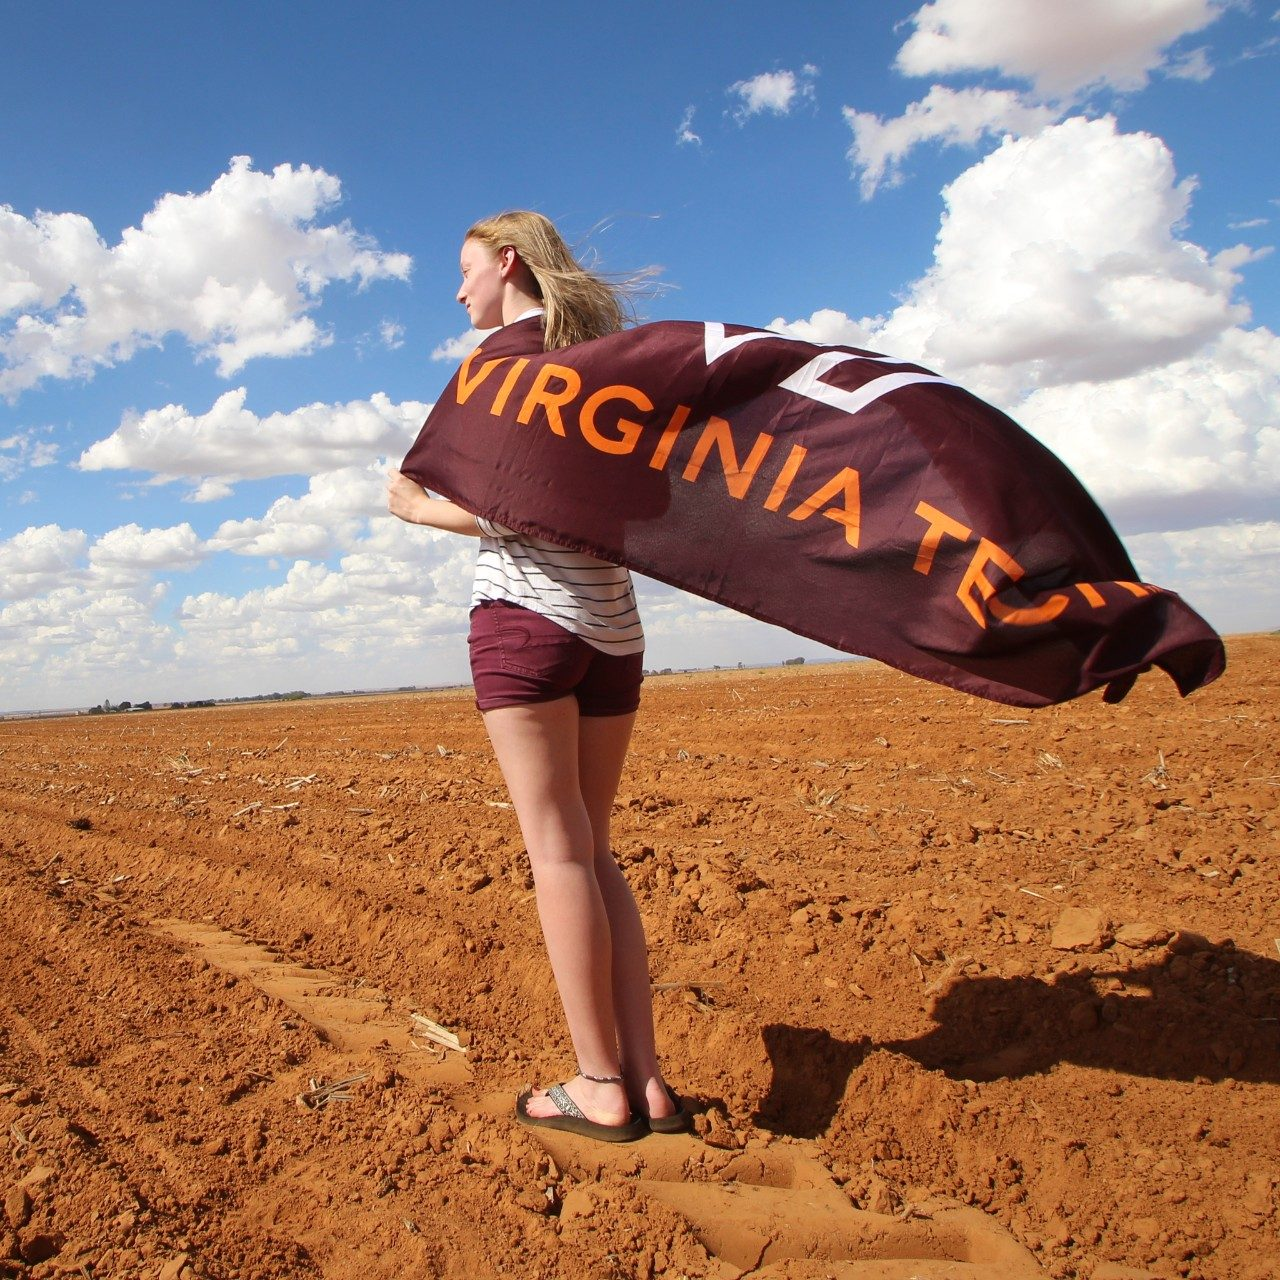 Student holding VT flag as a cape